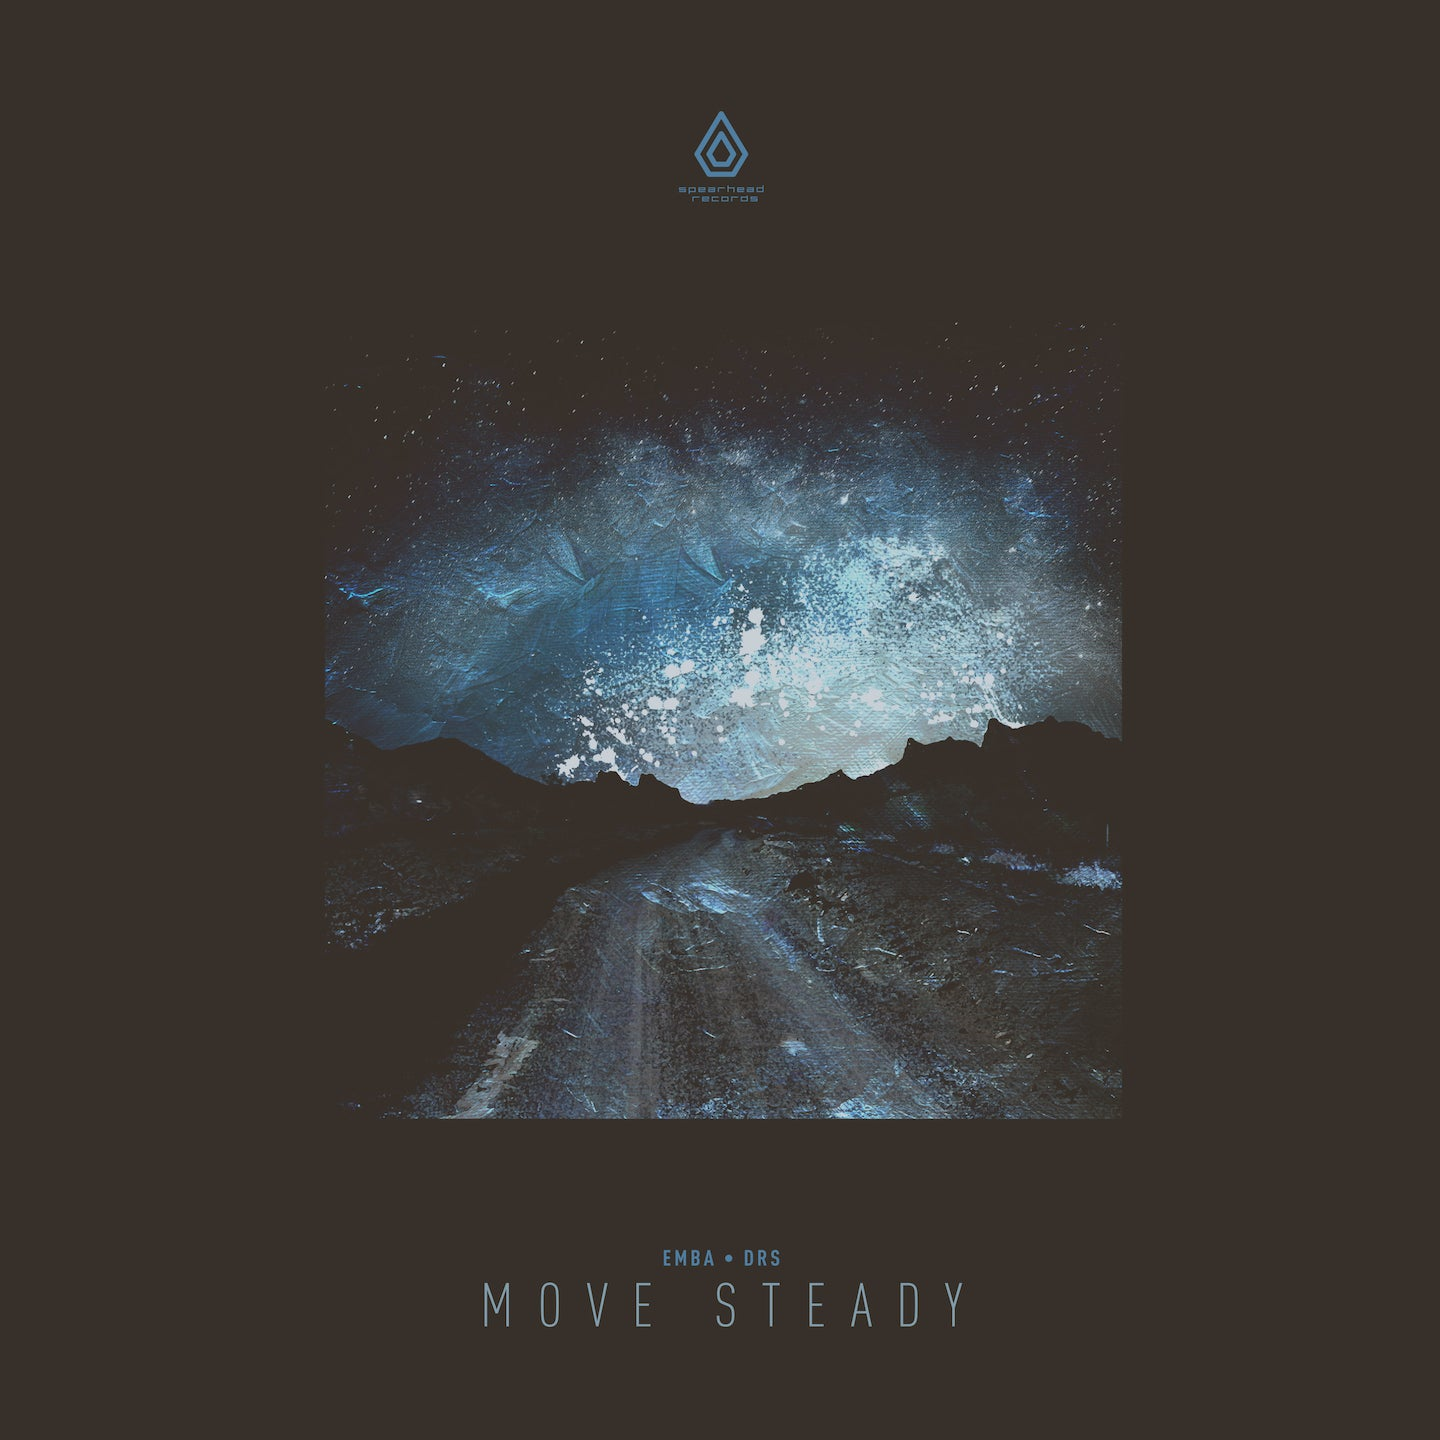 Emba & DRS - Move Steady - Download